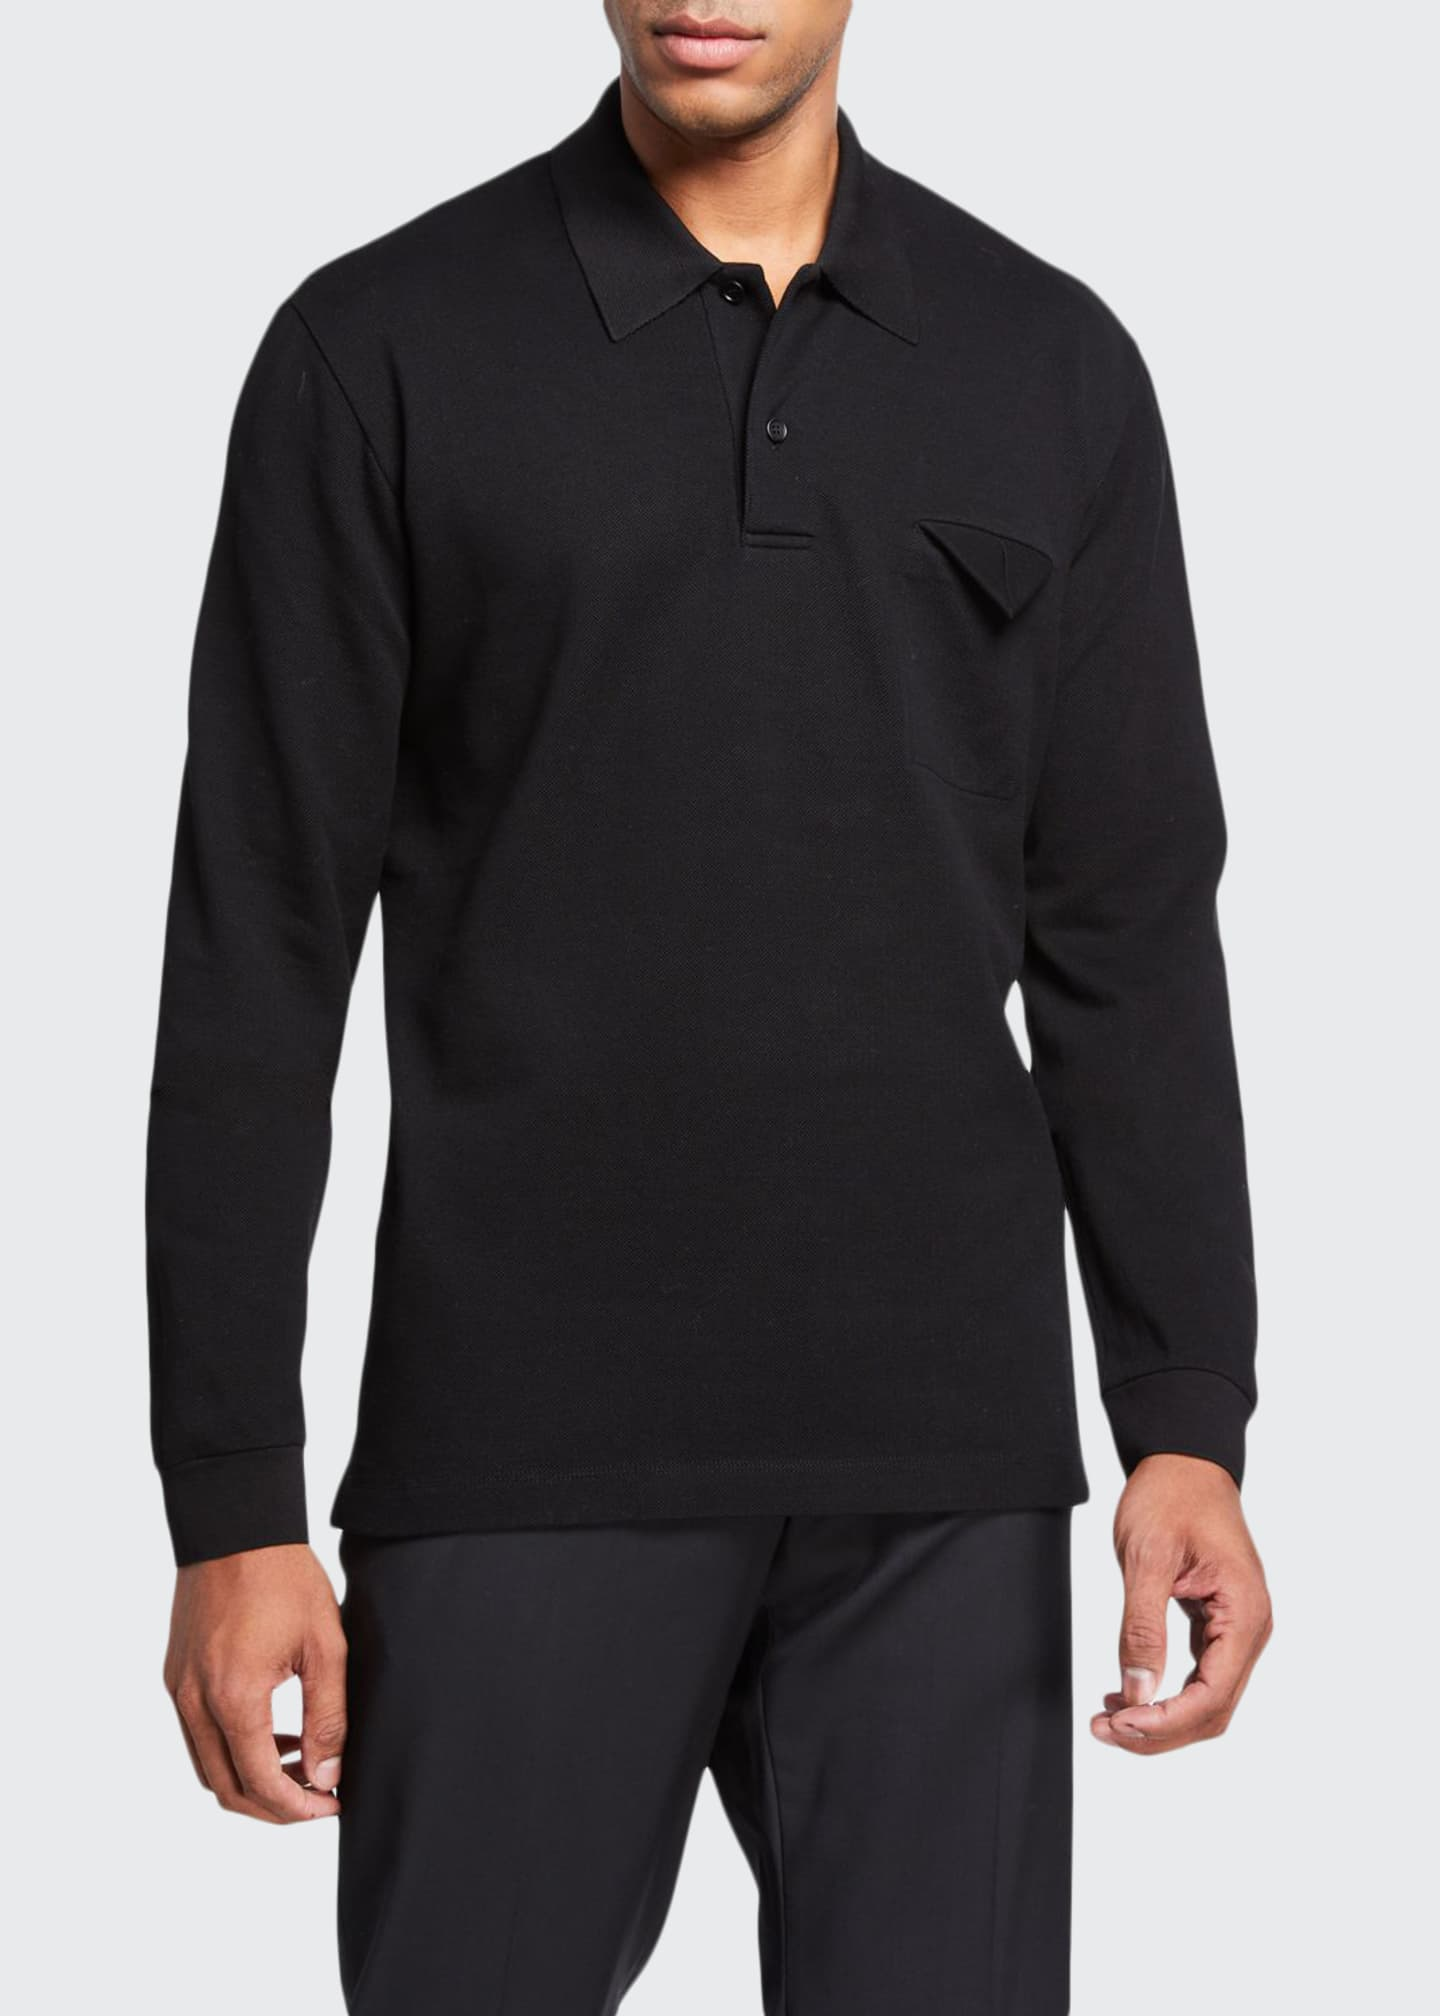 Bottega Veneta Men's Long-Sleeve Pique Jersey Polo Shirt